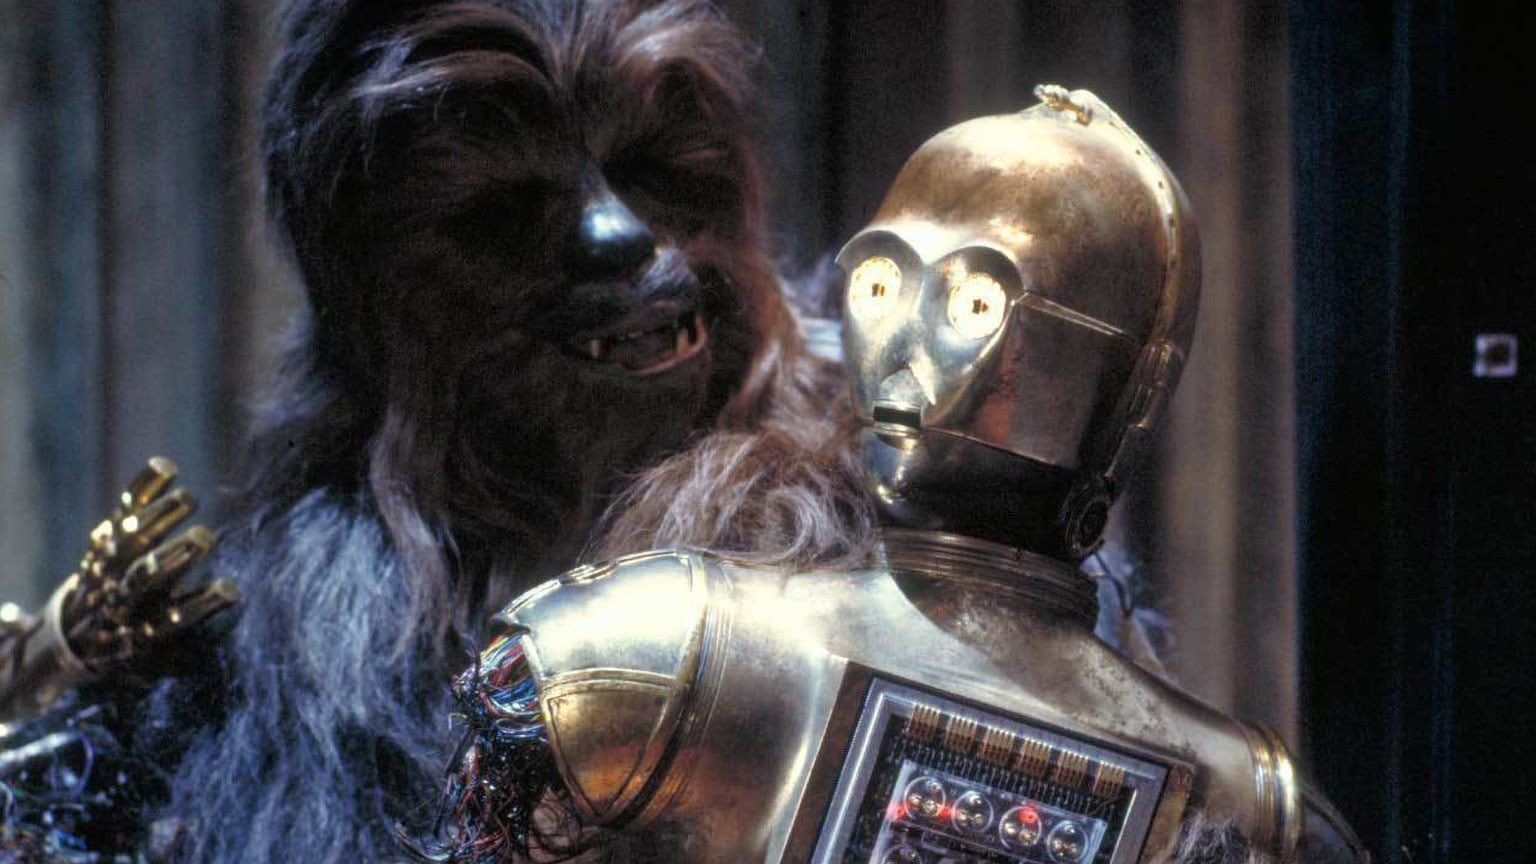 Empire at 40 | The Empire Strikes Back Isn't Just the Darkest Star Wars Film. It's Also the Funniest.